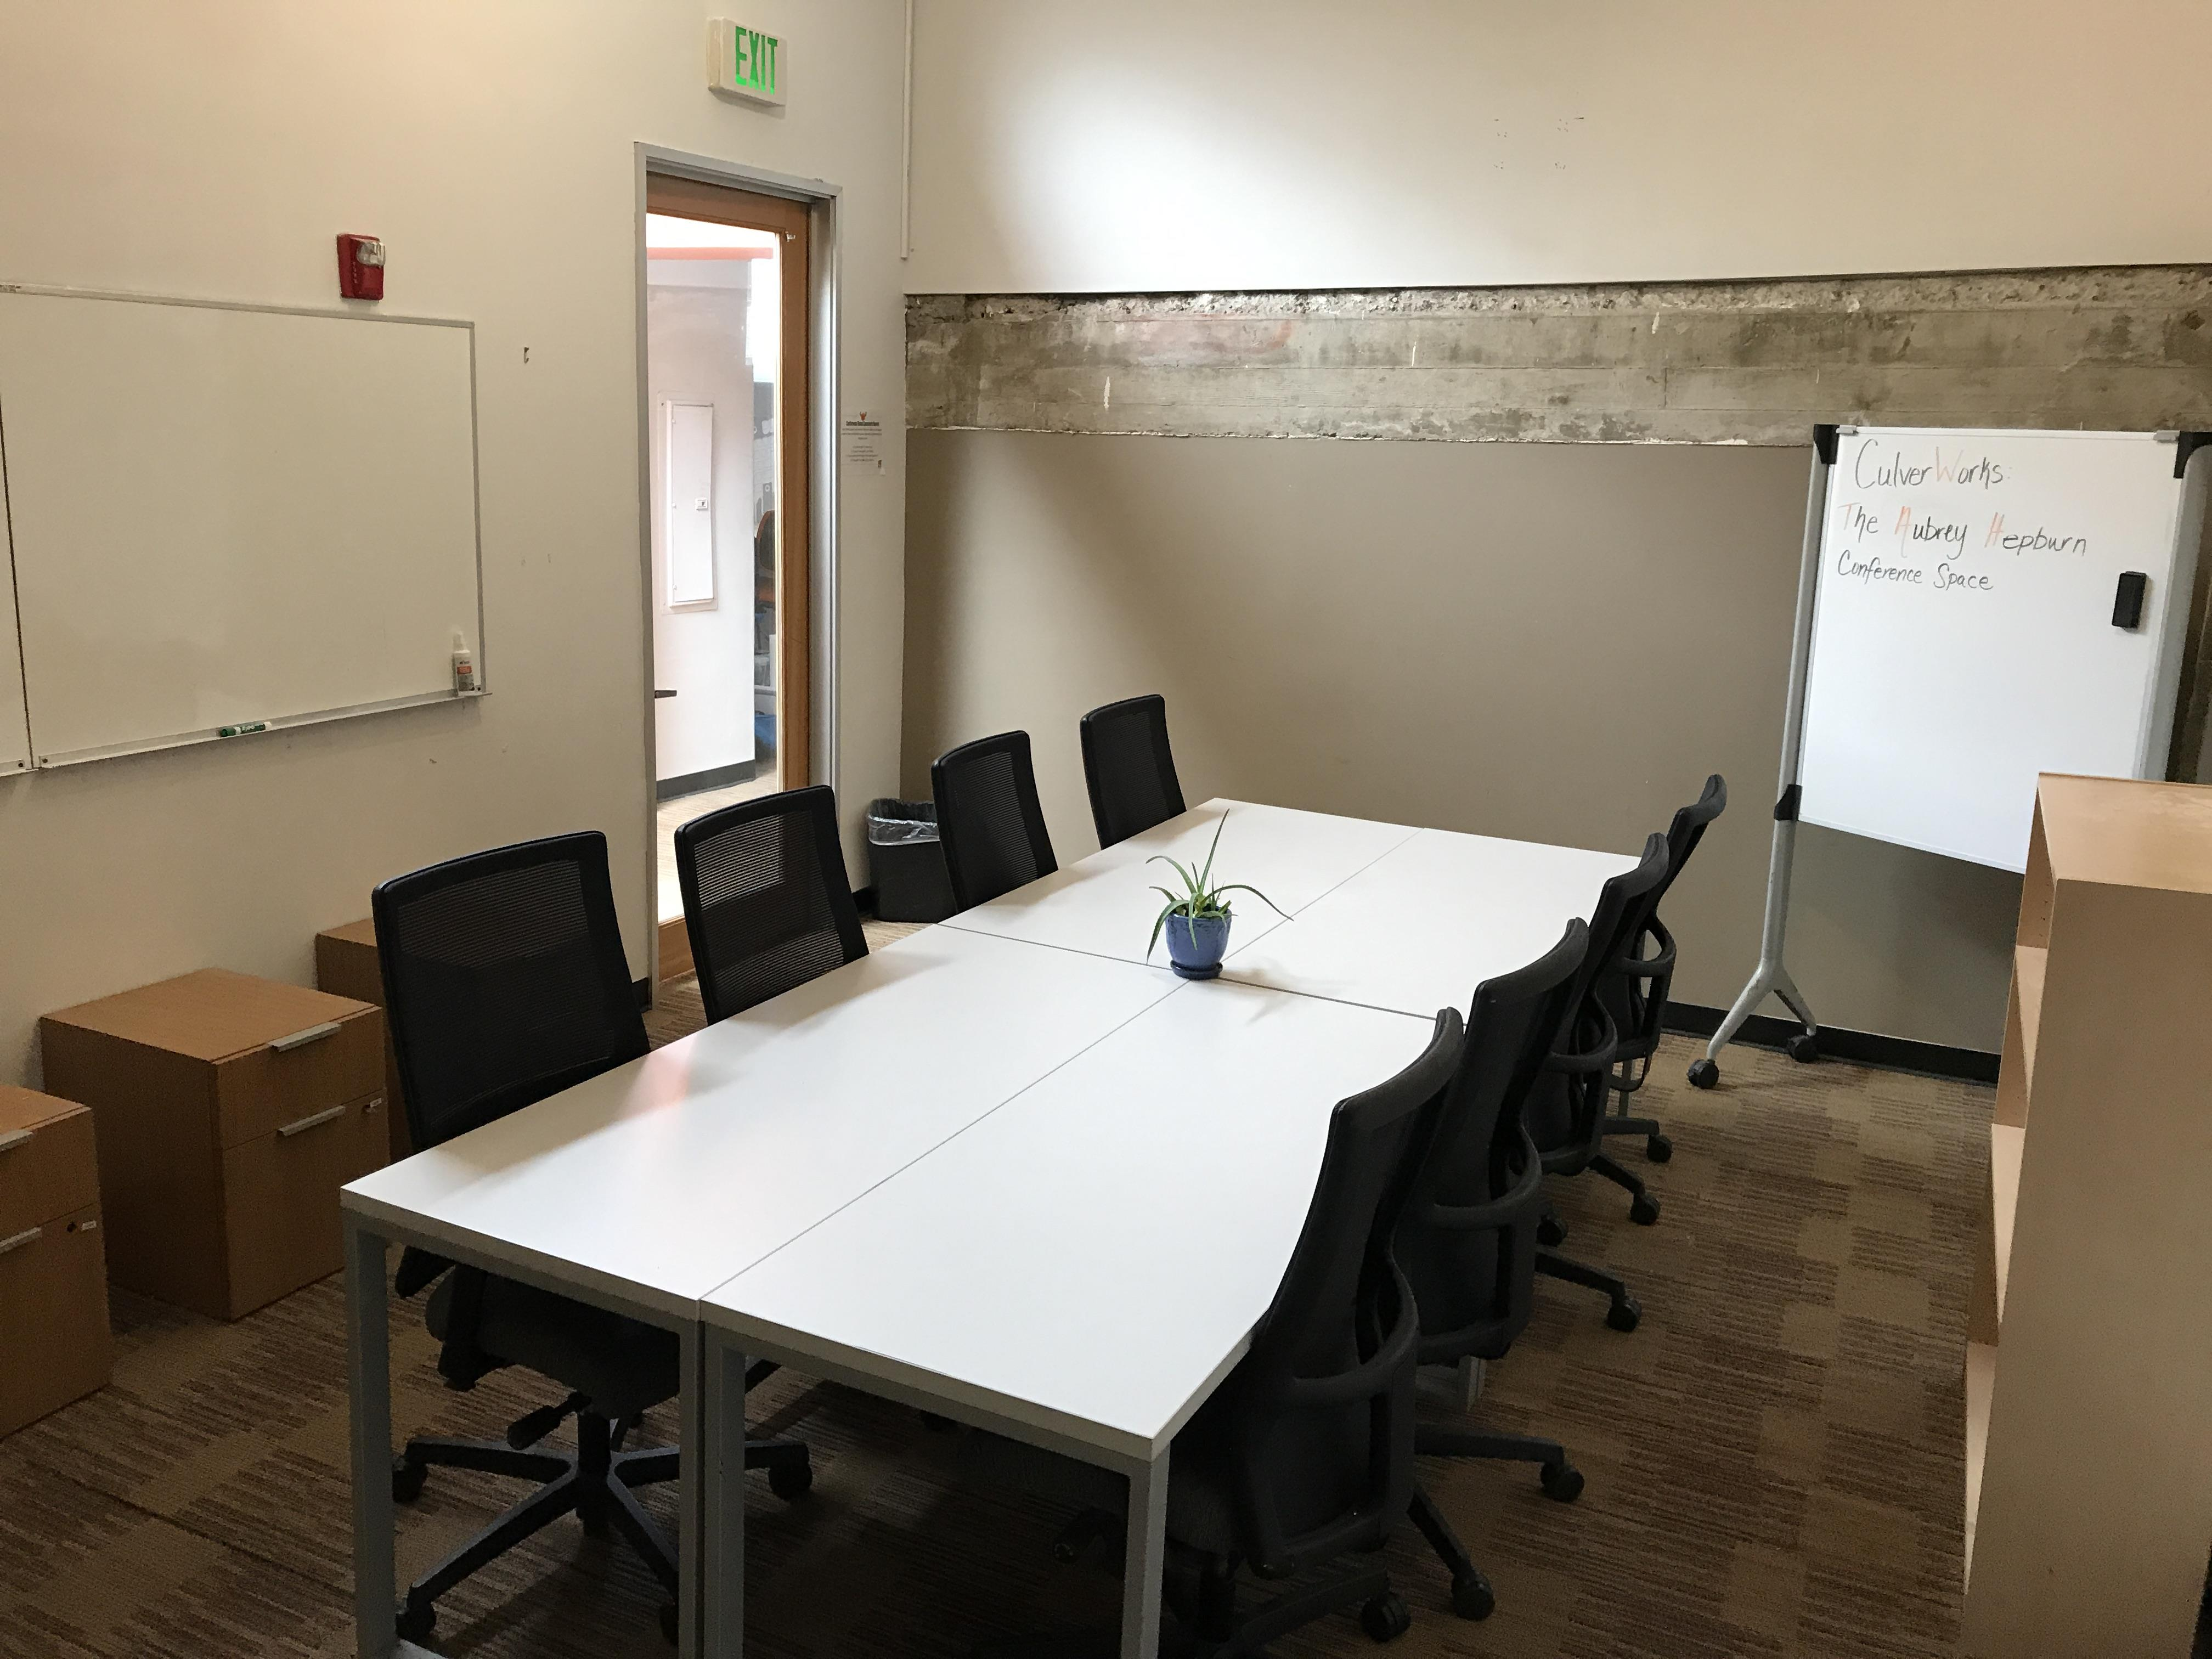 CulverWorks - Meeting Room (The Audrey Hepburn)